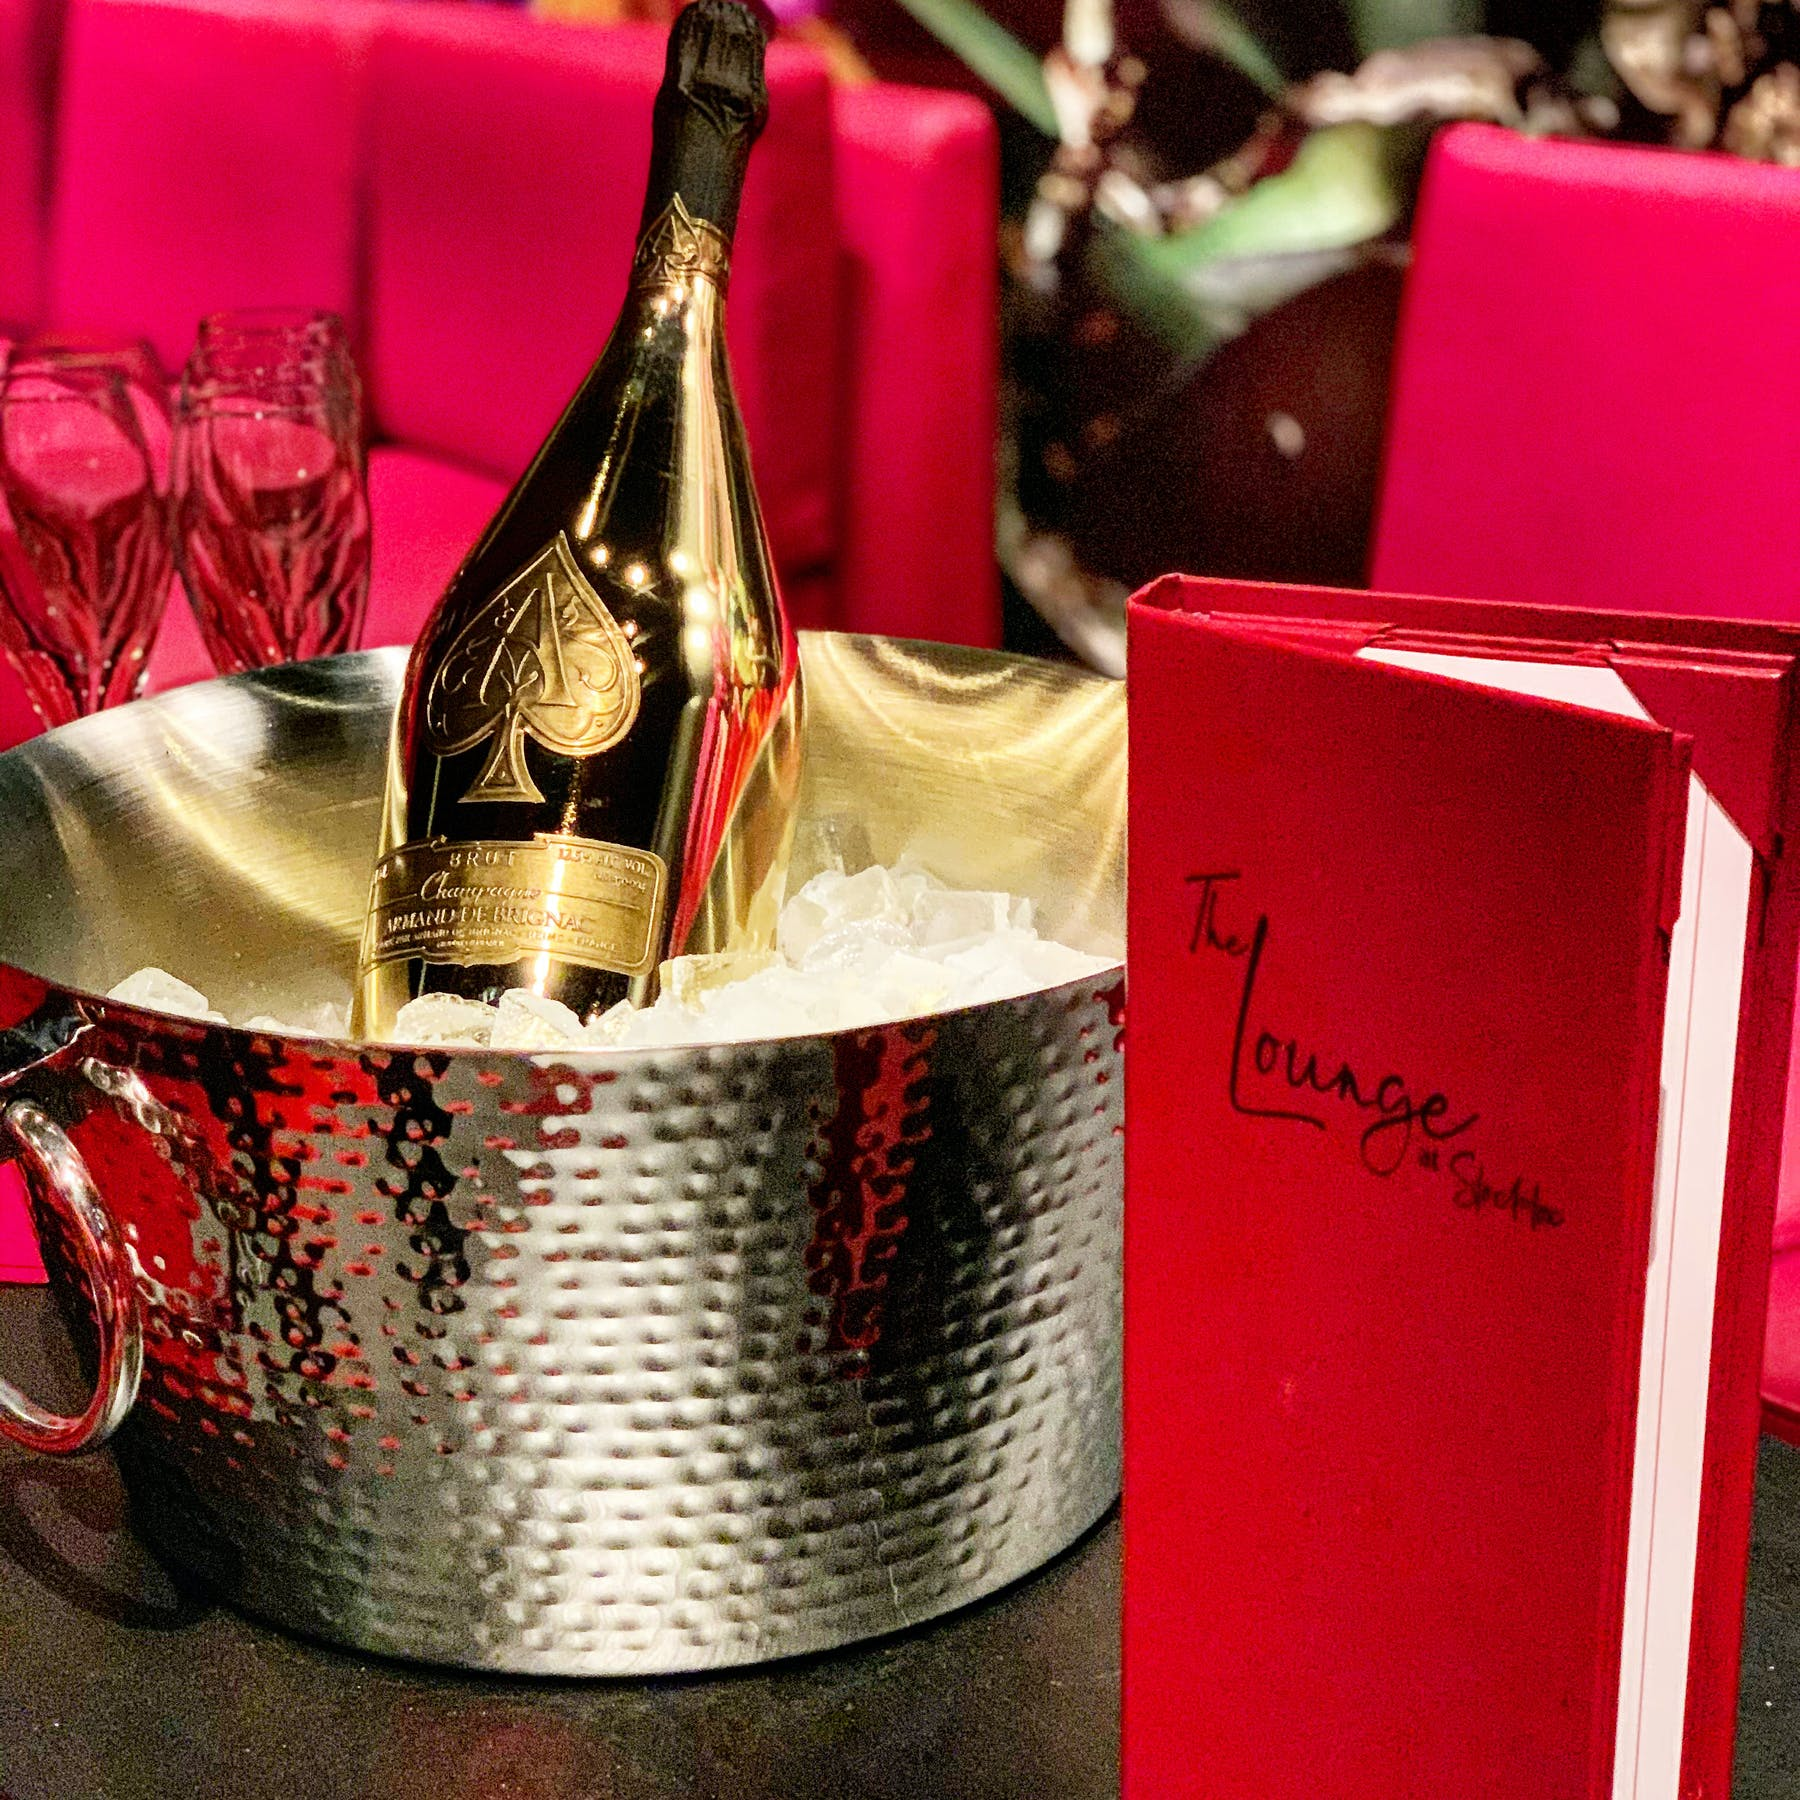 a champagne bottle on a bowl filled with ice